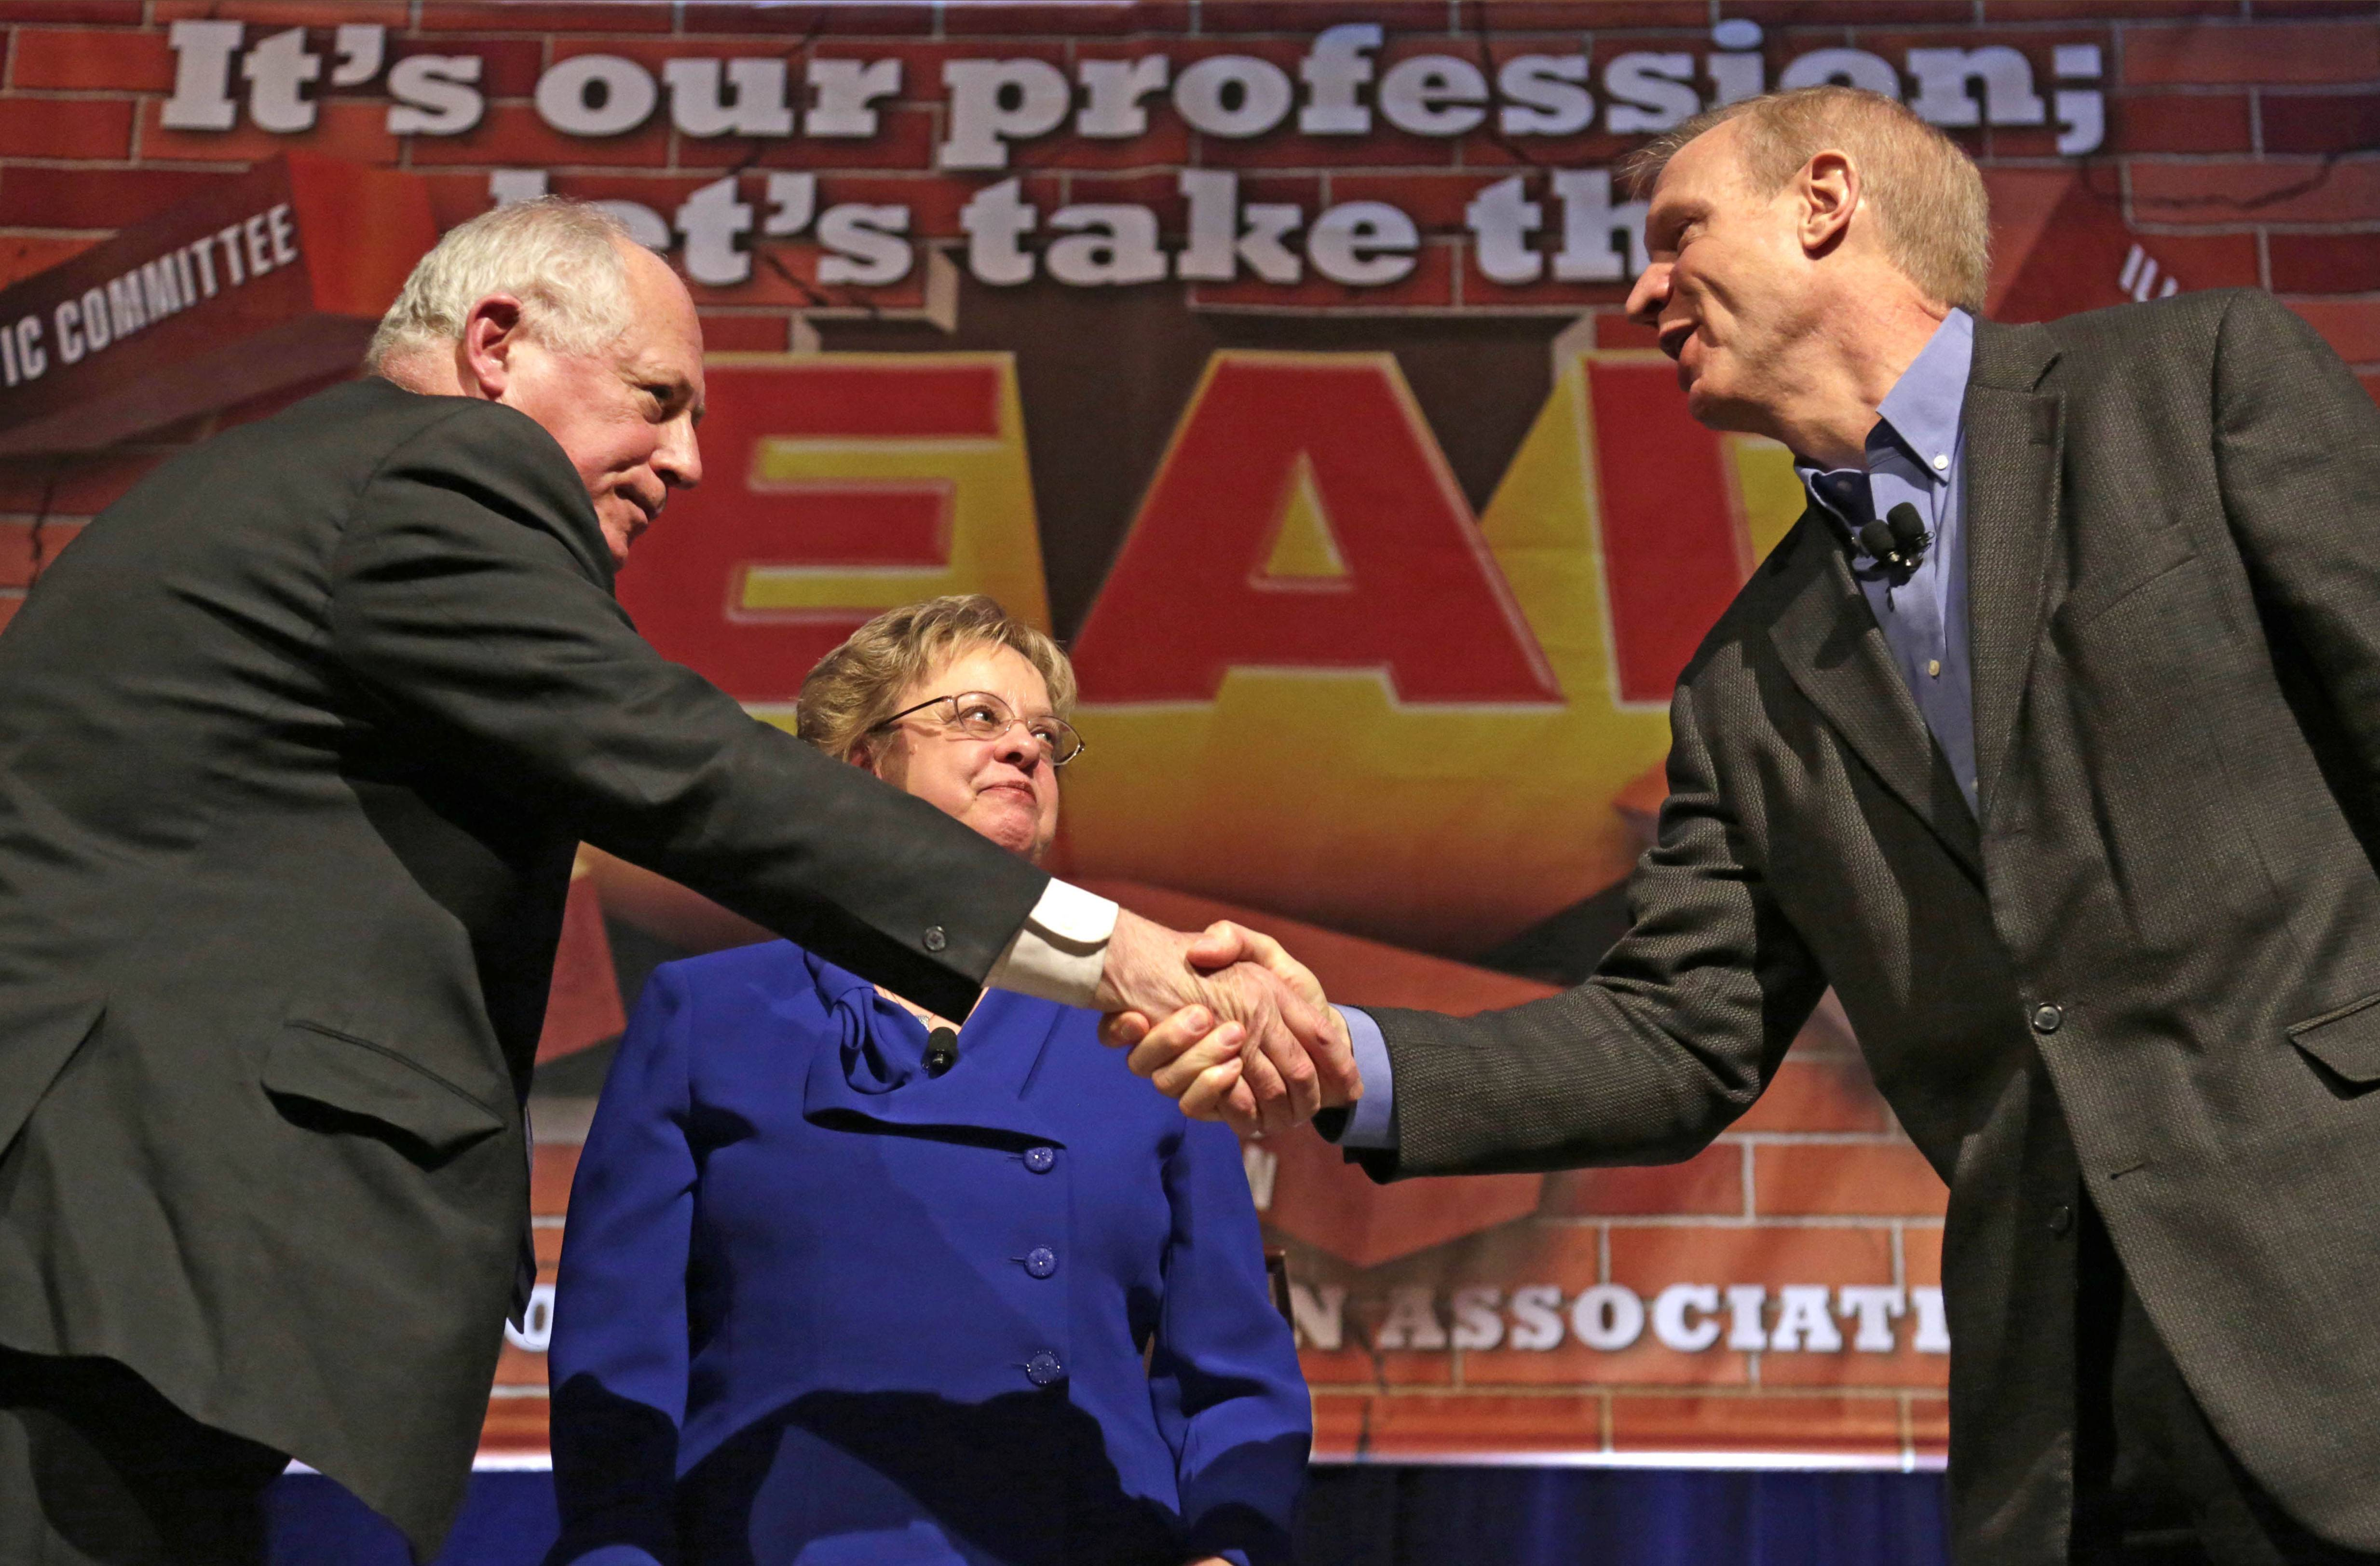 Gov. Pat Quinn, left, and his Republican rival, Bruce Rauner, shake hands after they appeared together Friday during the annual meeting of the Illinois Education Association in Chicago. Association President Cinda Klickna, who moderated the event, stands between them.